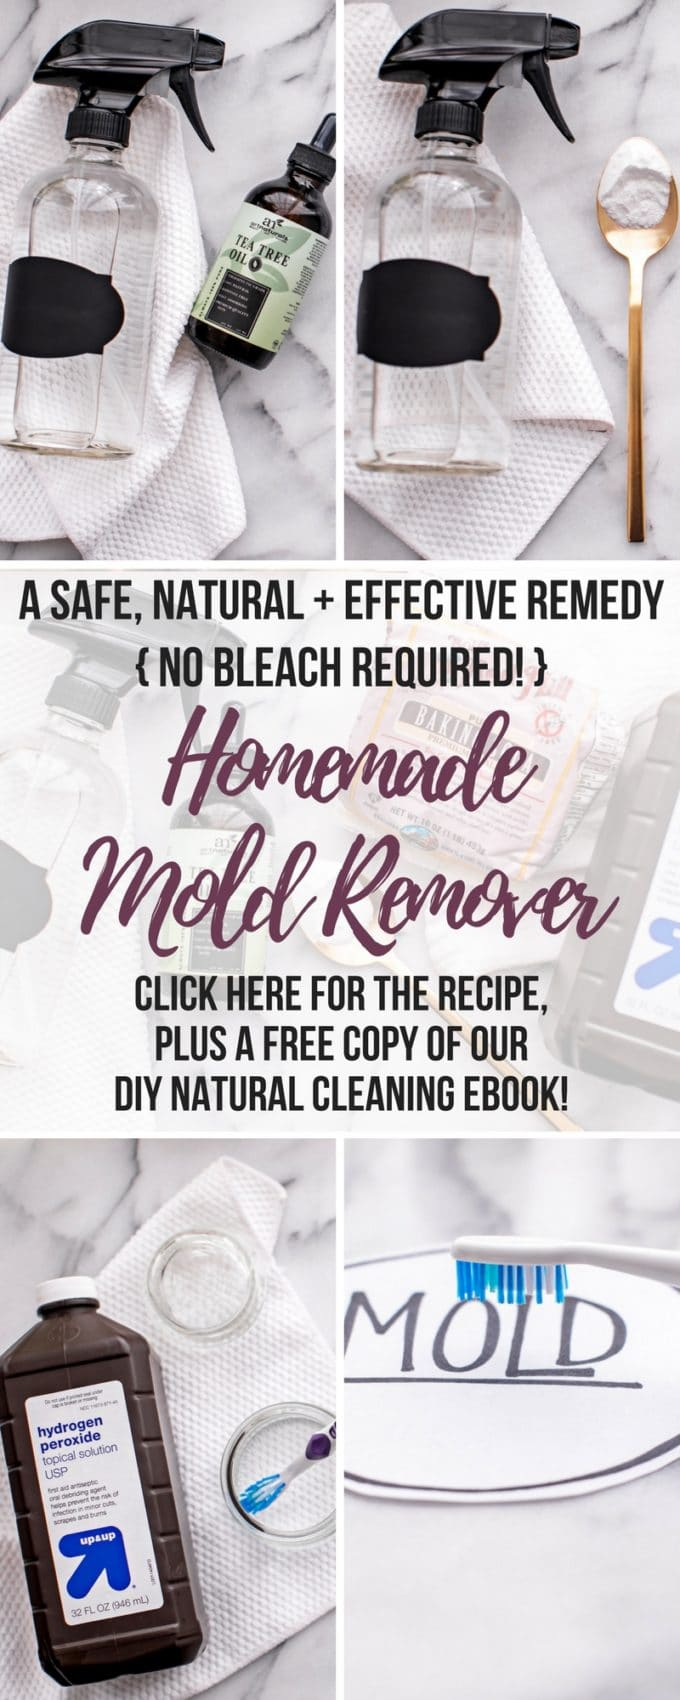 Homemade Mold Remover